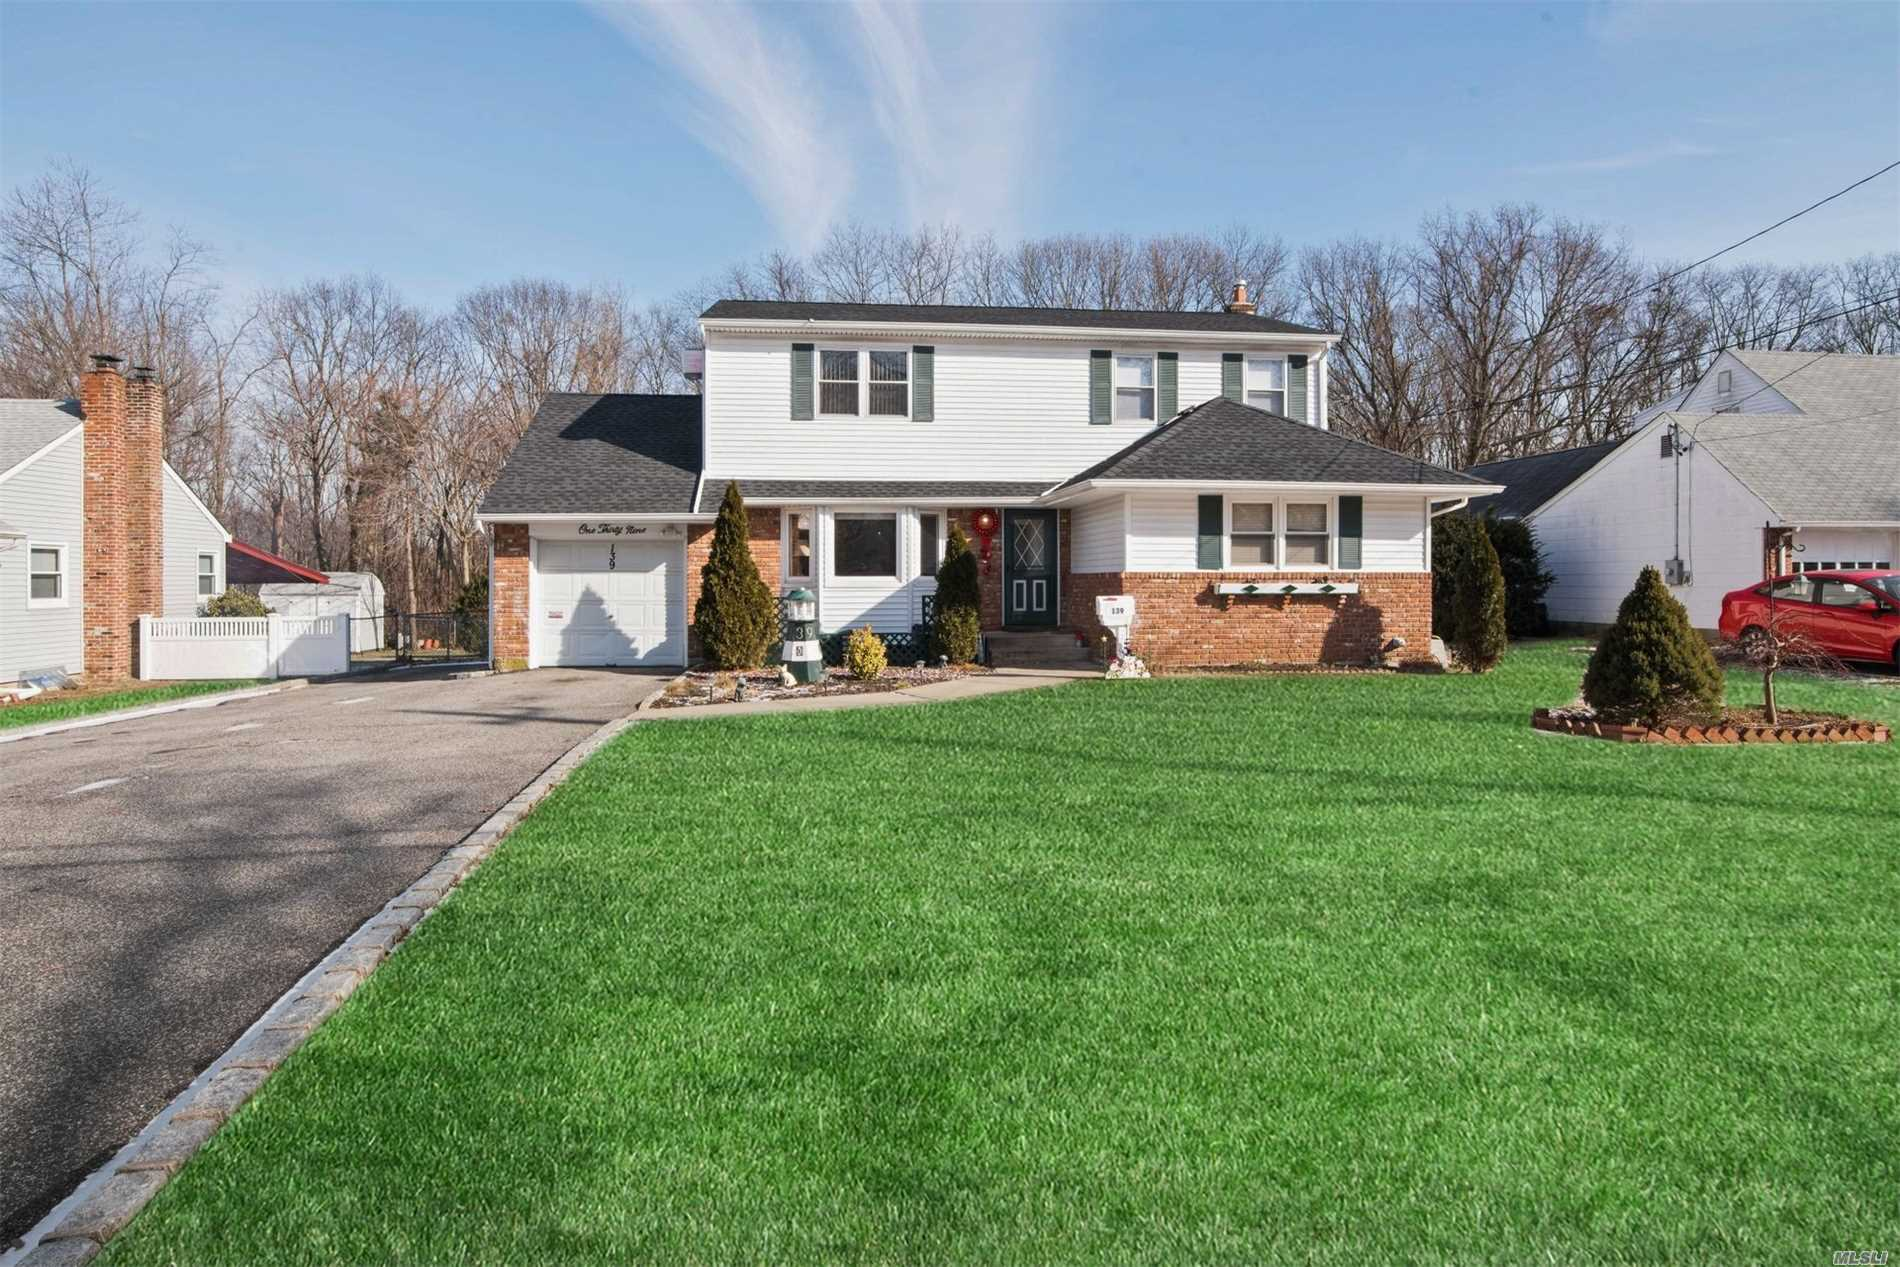 Gorgeous 5 Bedroom, 2 Bathroom, Expanded Cape. New Roof, New Bathroom, Quiet Street. Over .25 Acre Lot, Above Ground Pool. 1 Car Garage. Full Finished Basement With Separate Outside Entrance. Open Concept Kitchen And Living Room. Completely Renovated 2nd Floor. 220 Amp Service. This Is A Must See!!